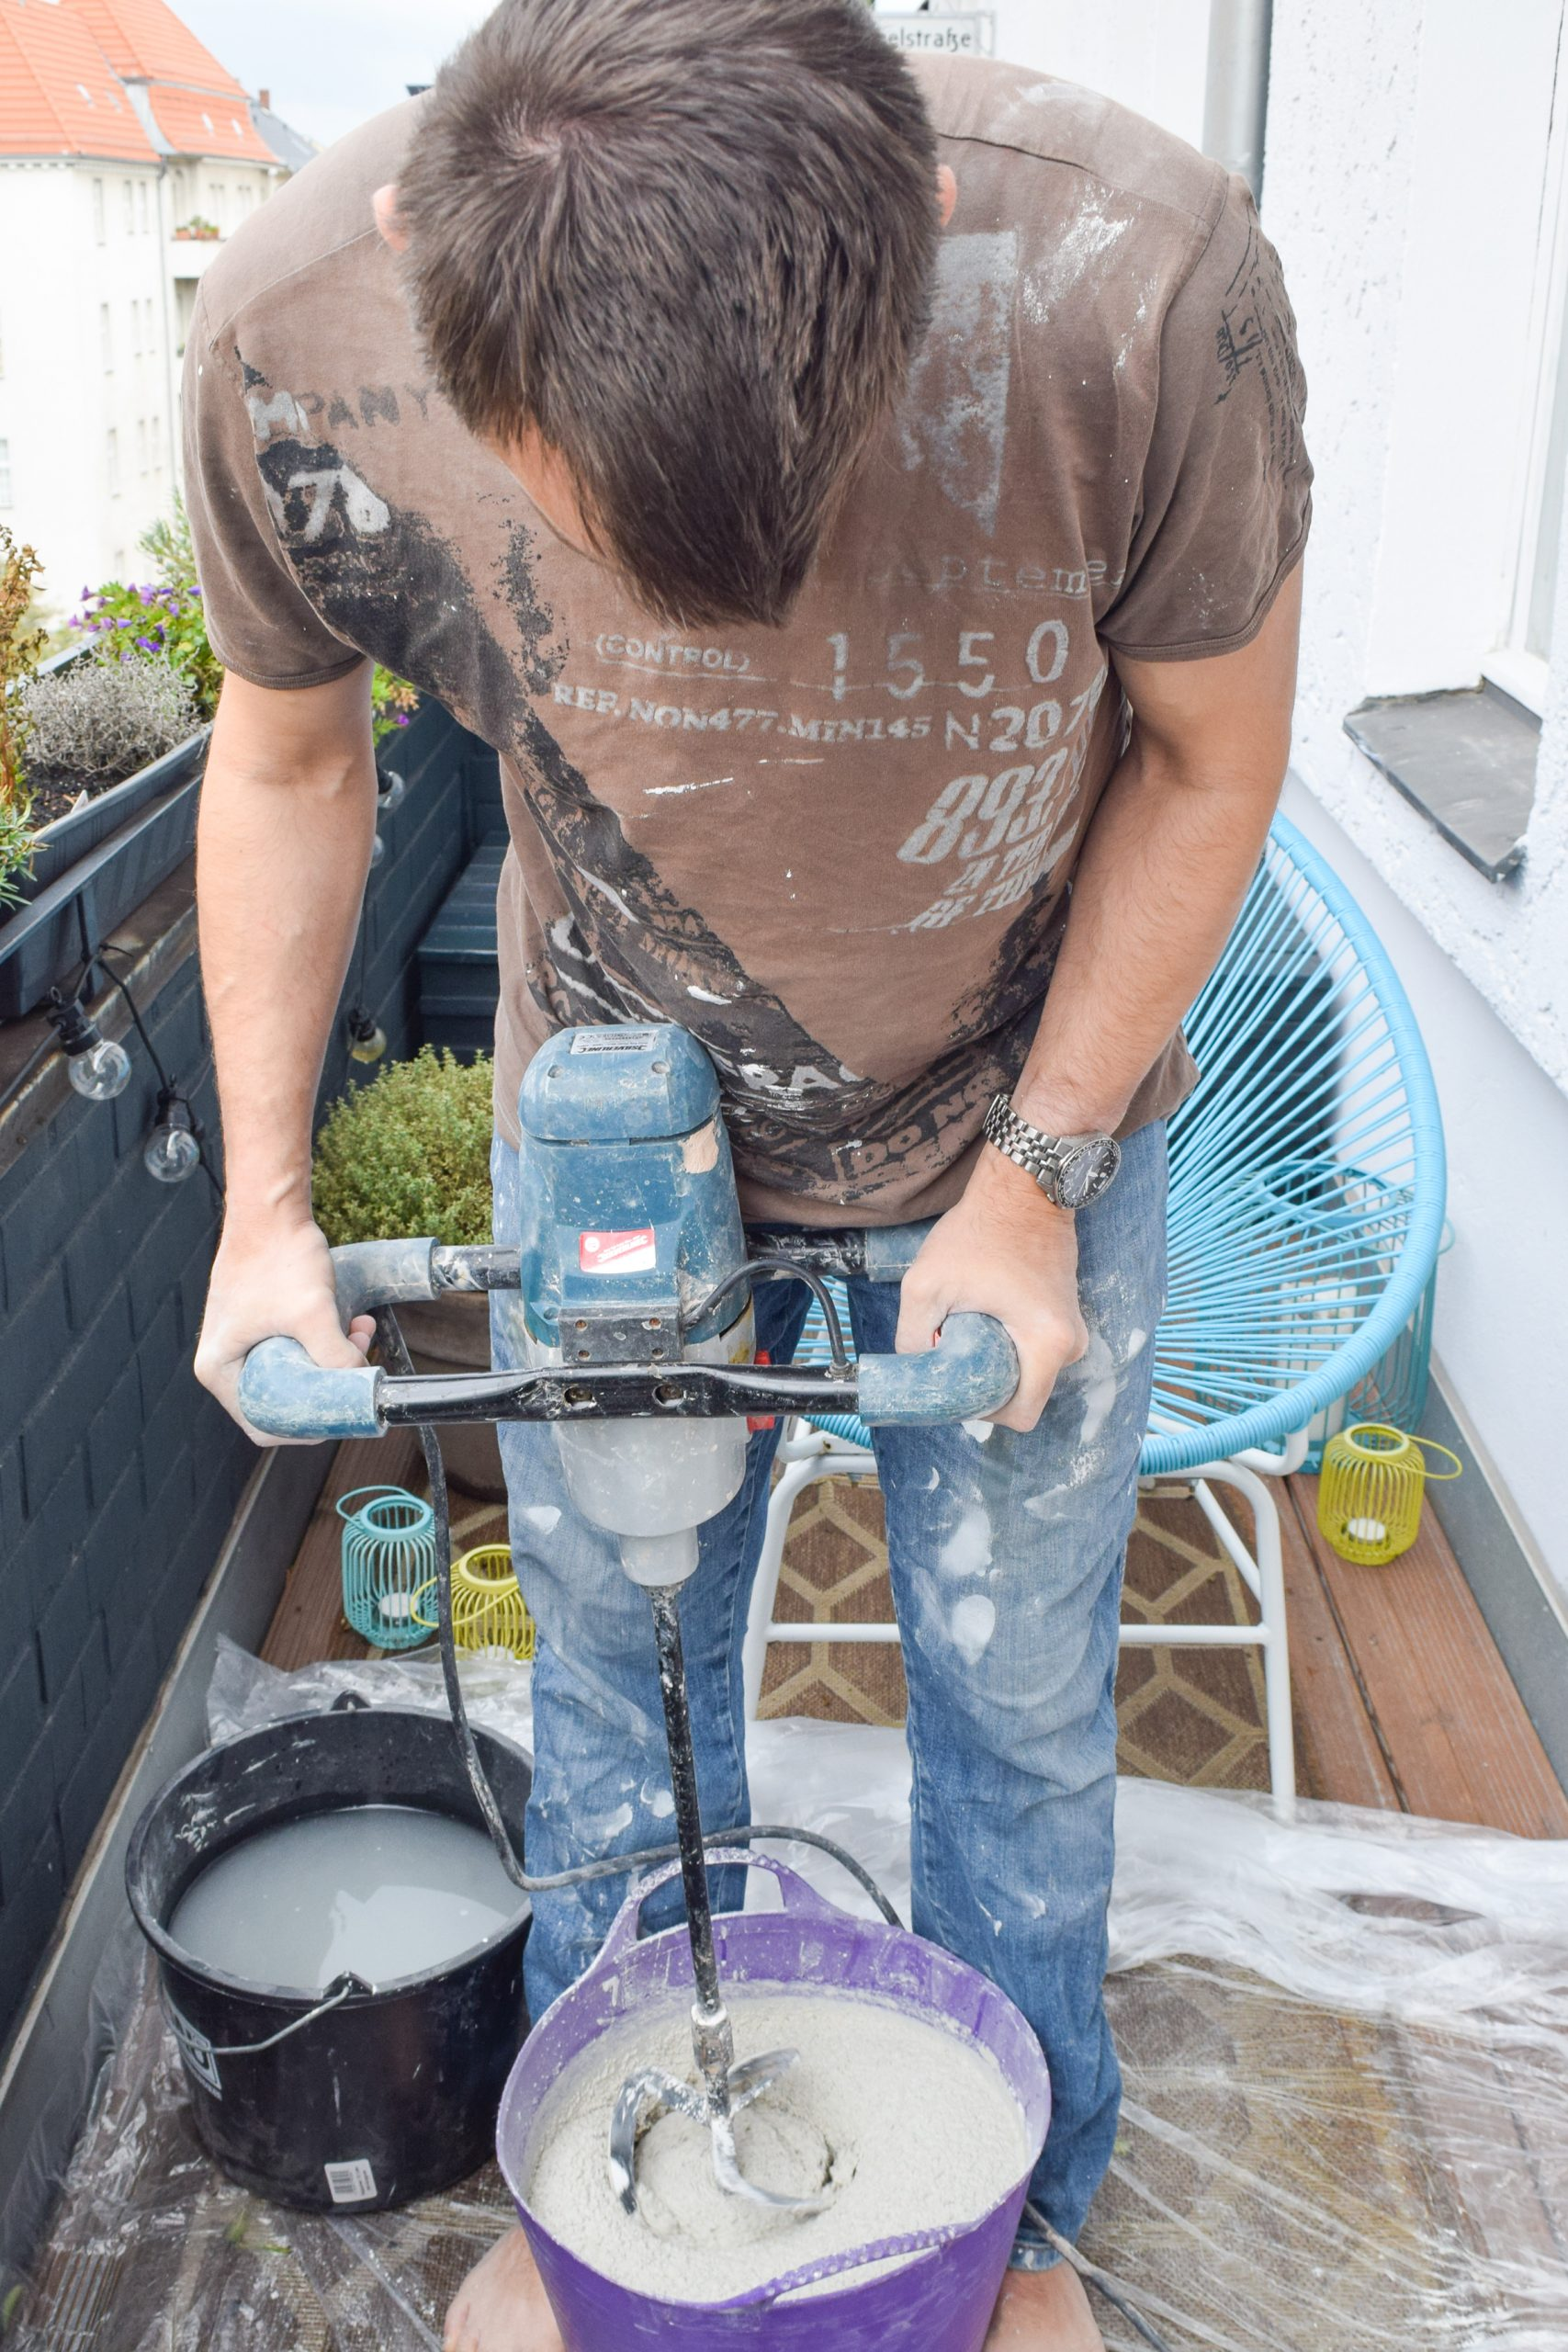 How To Build A Concrete Countertop | Little House On The Corner